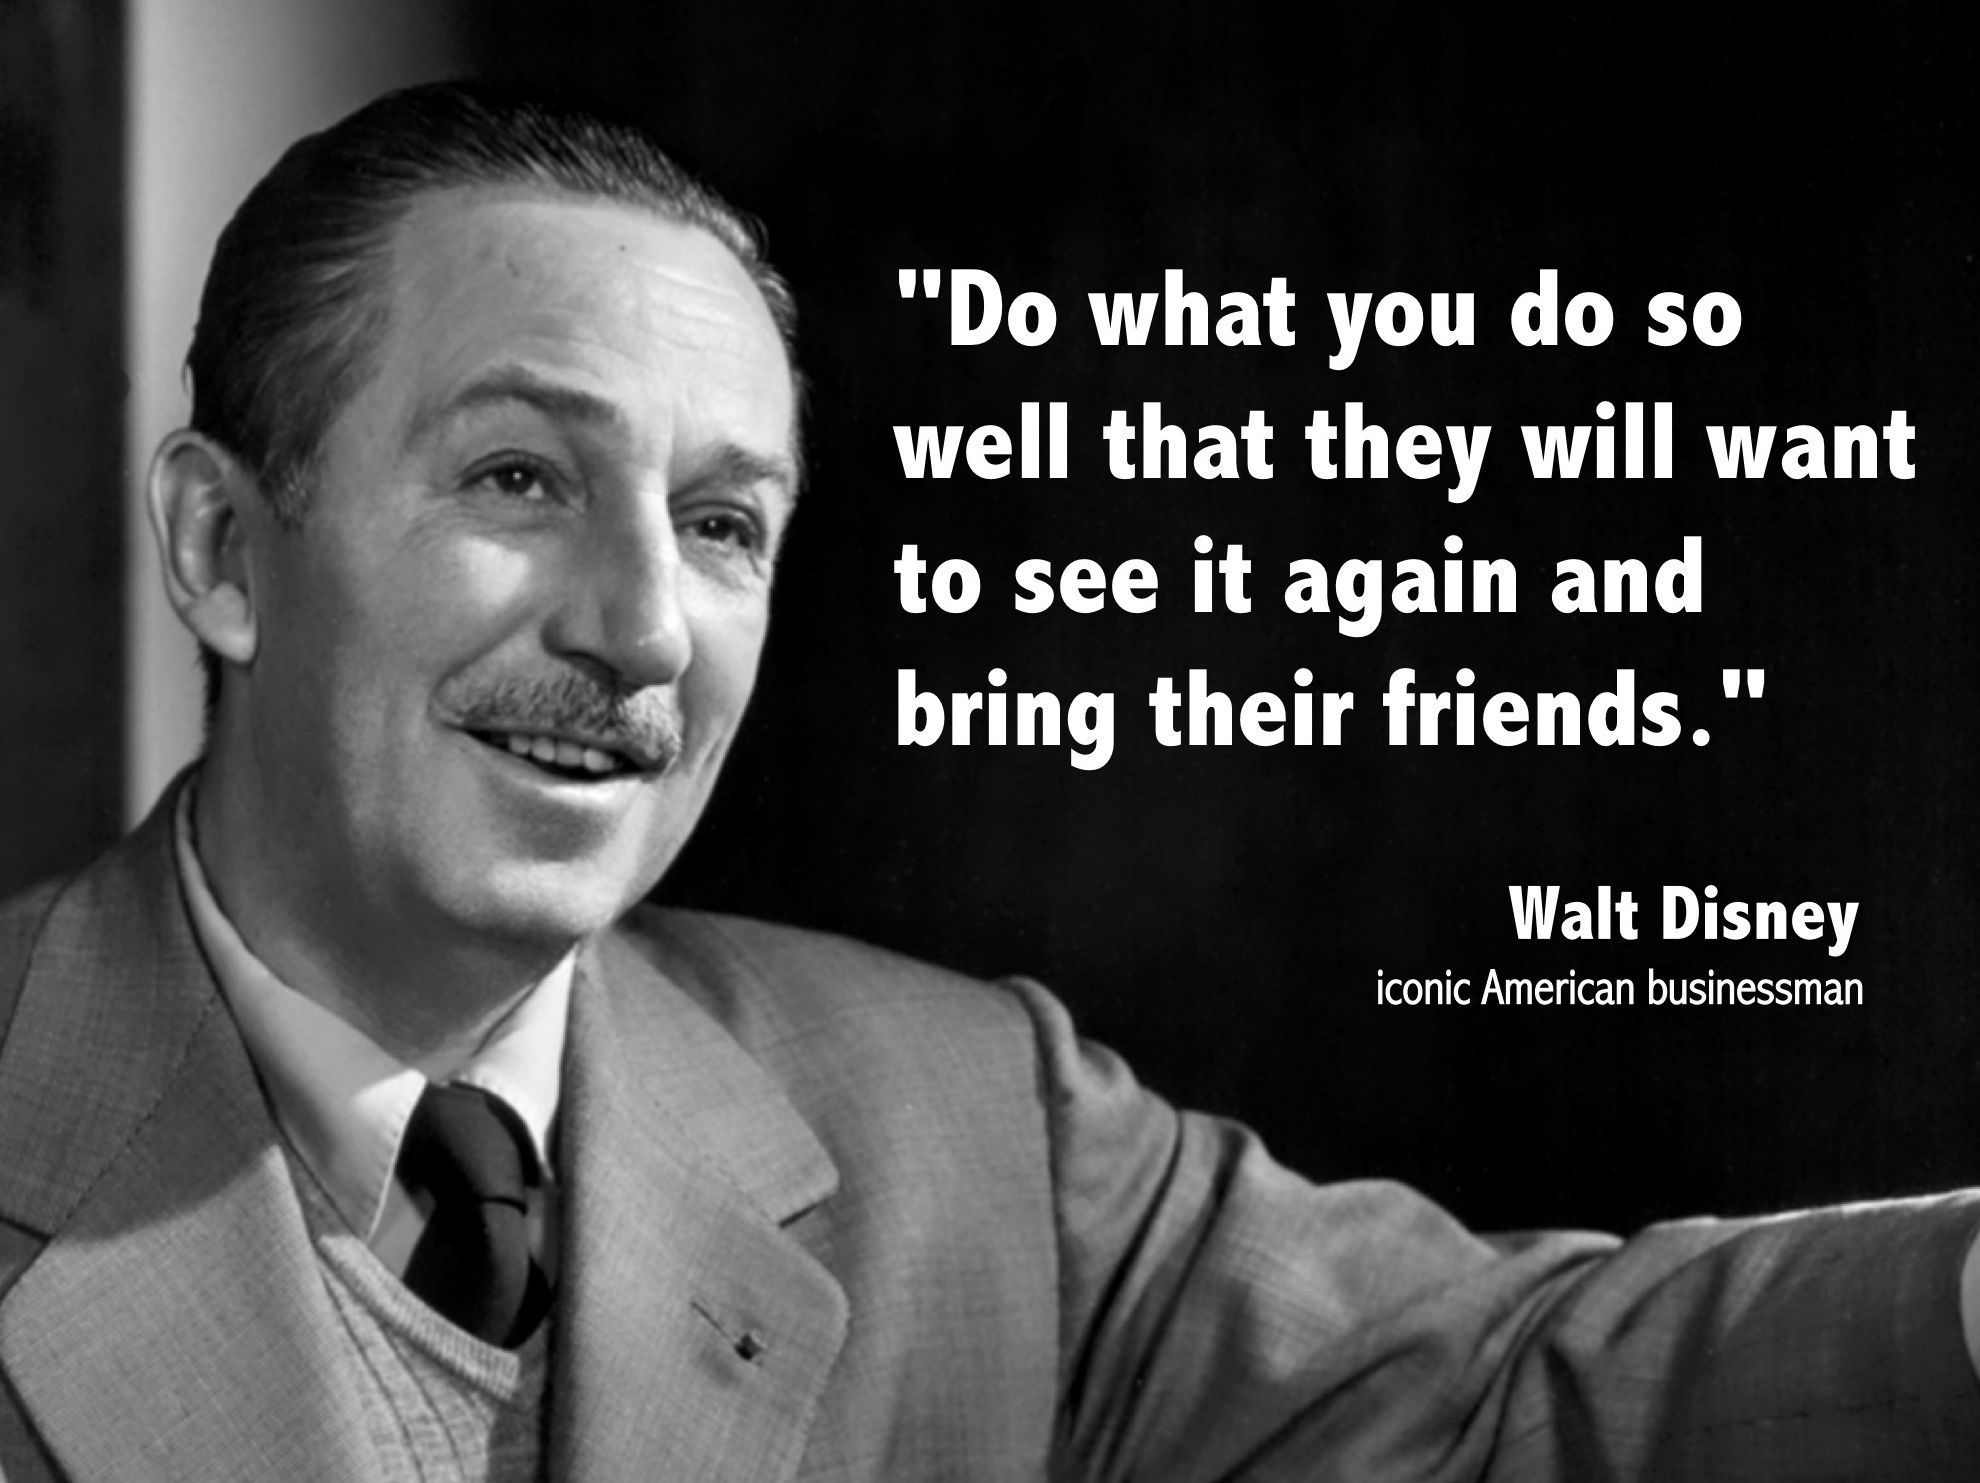 Walt Disney Quote Adorable Walt Disney Quote  Pinterest  Walt Disney Quotes Disney Quotes